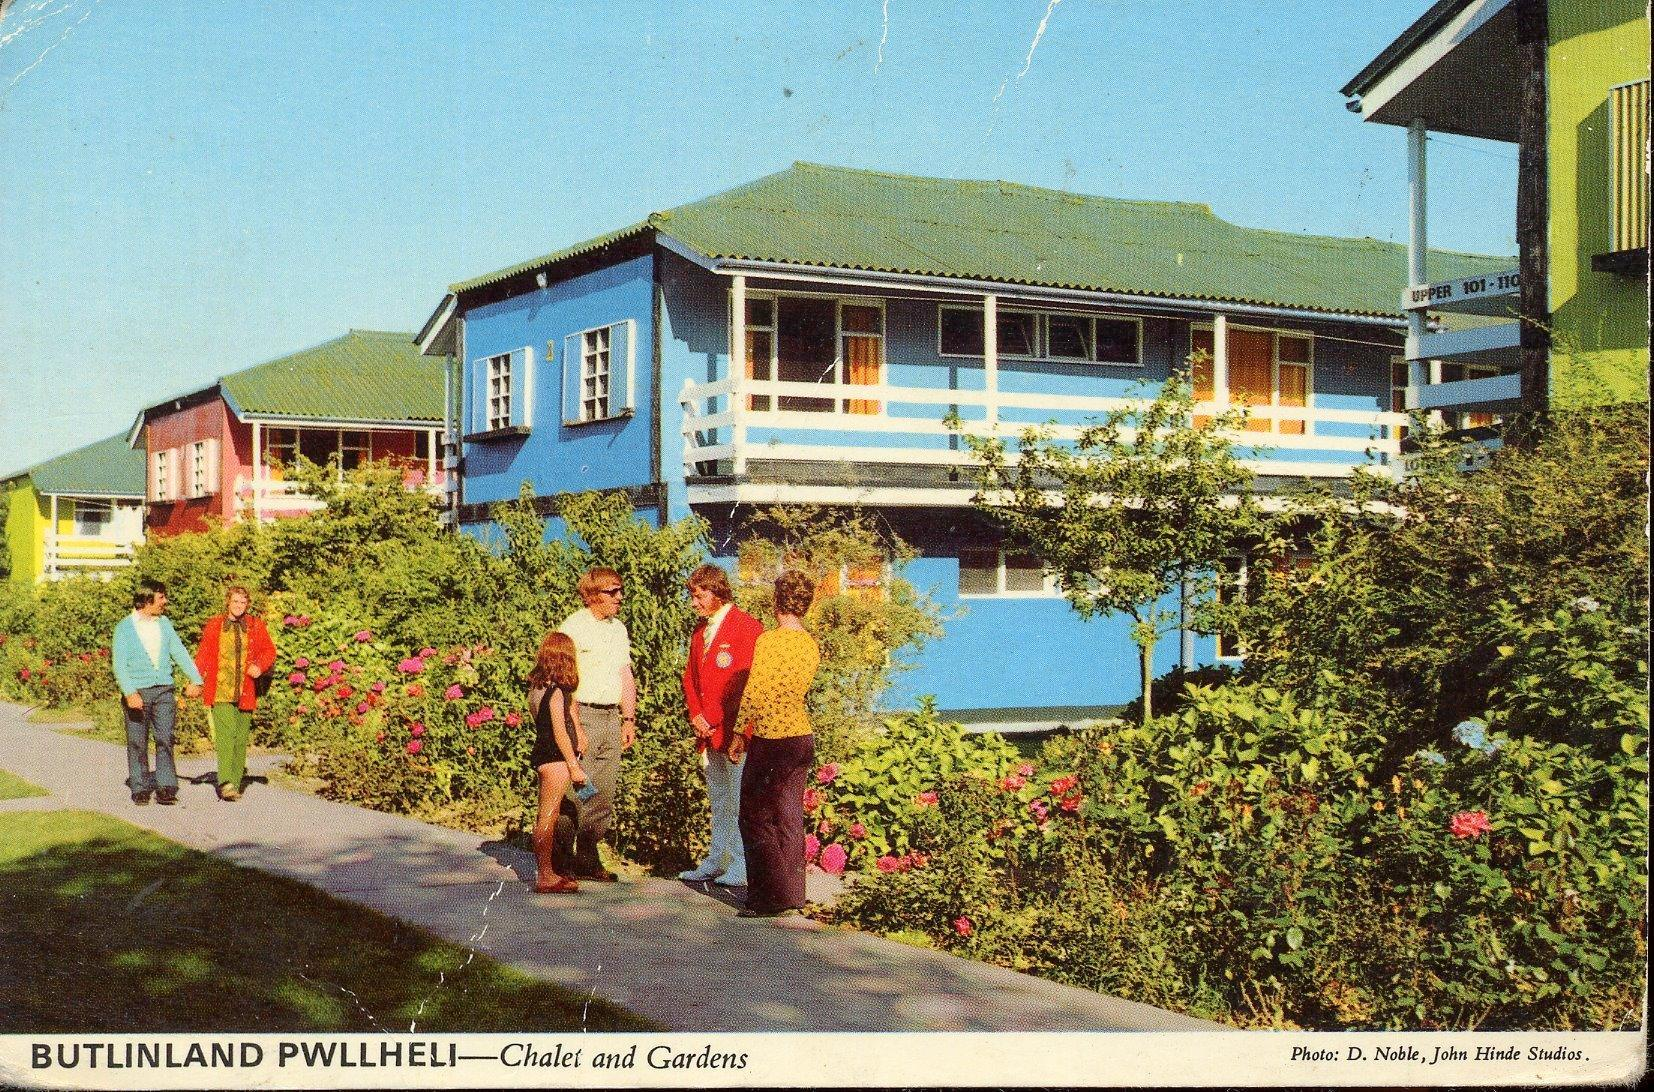 Butlins Pwllheli - Chalets & Gardens (postcard, early 1970s)